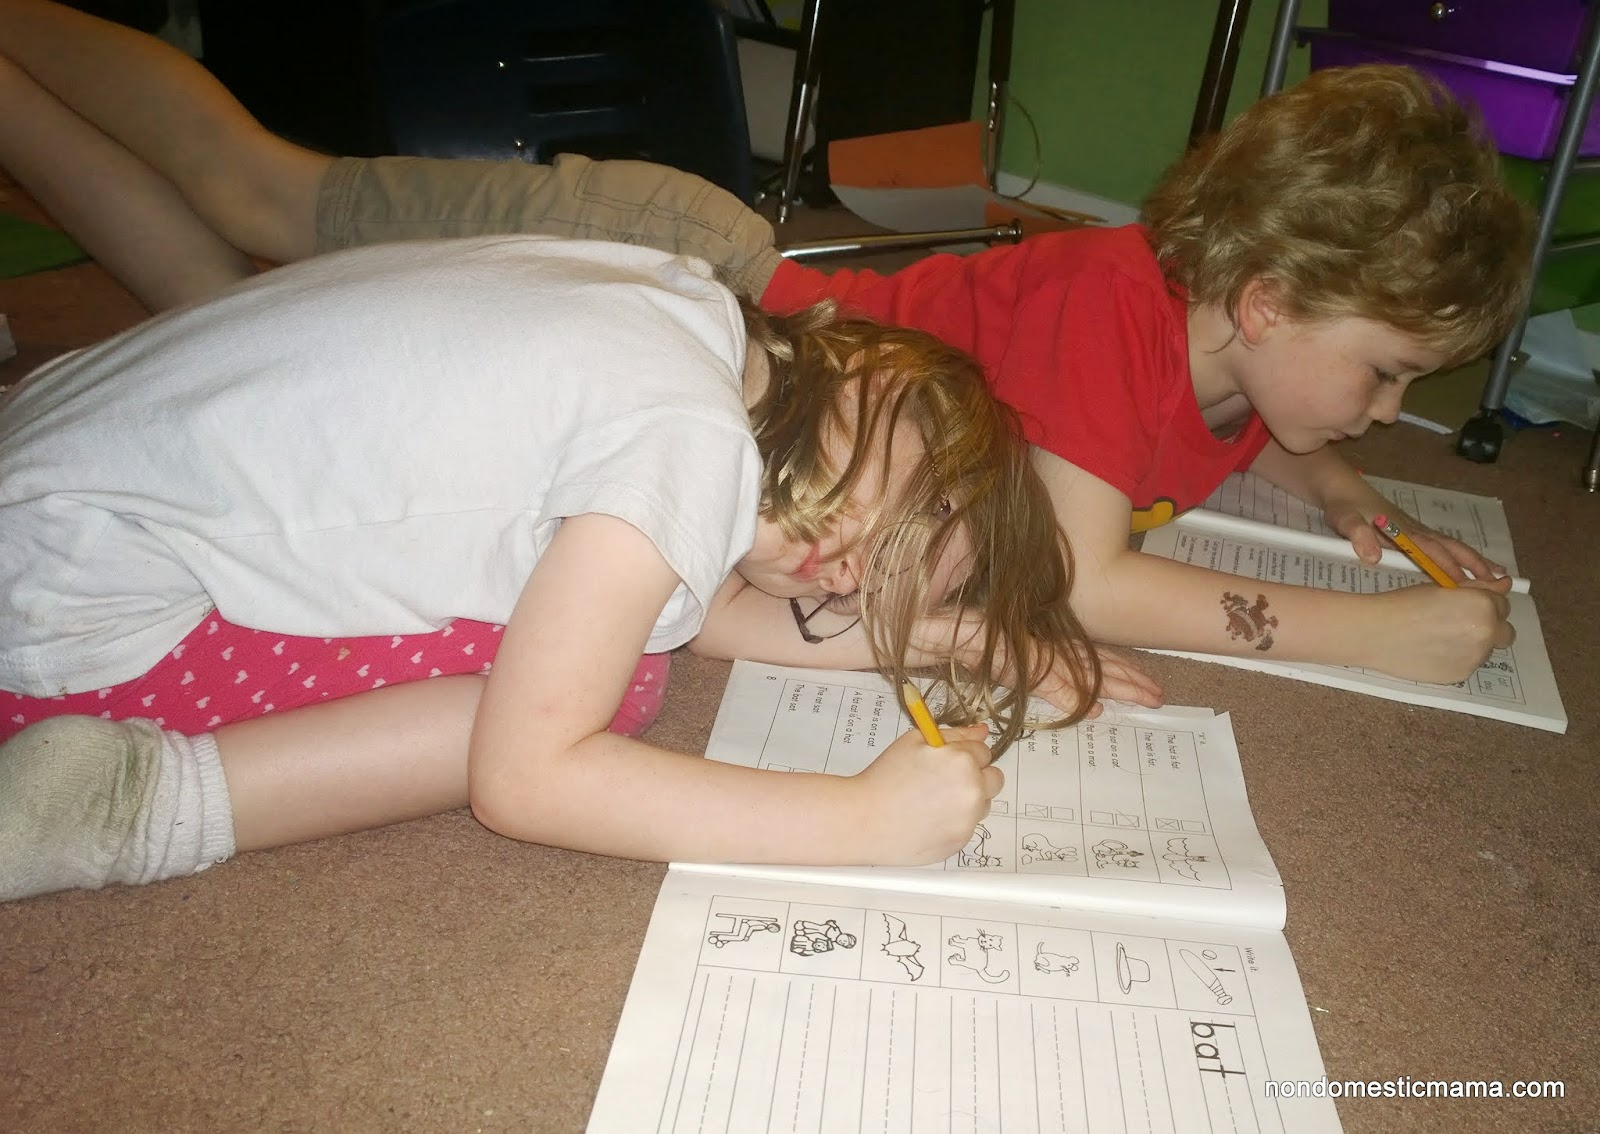 Homeschooling - On a Good Day